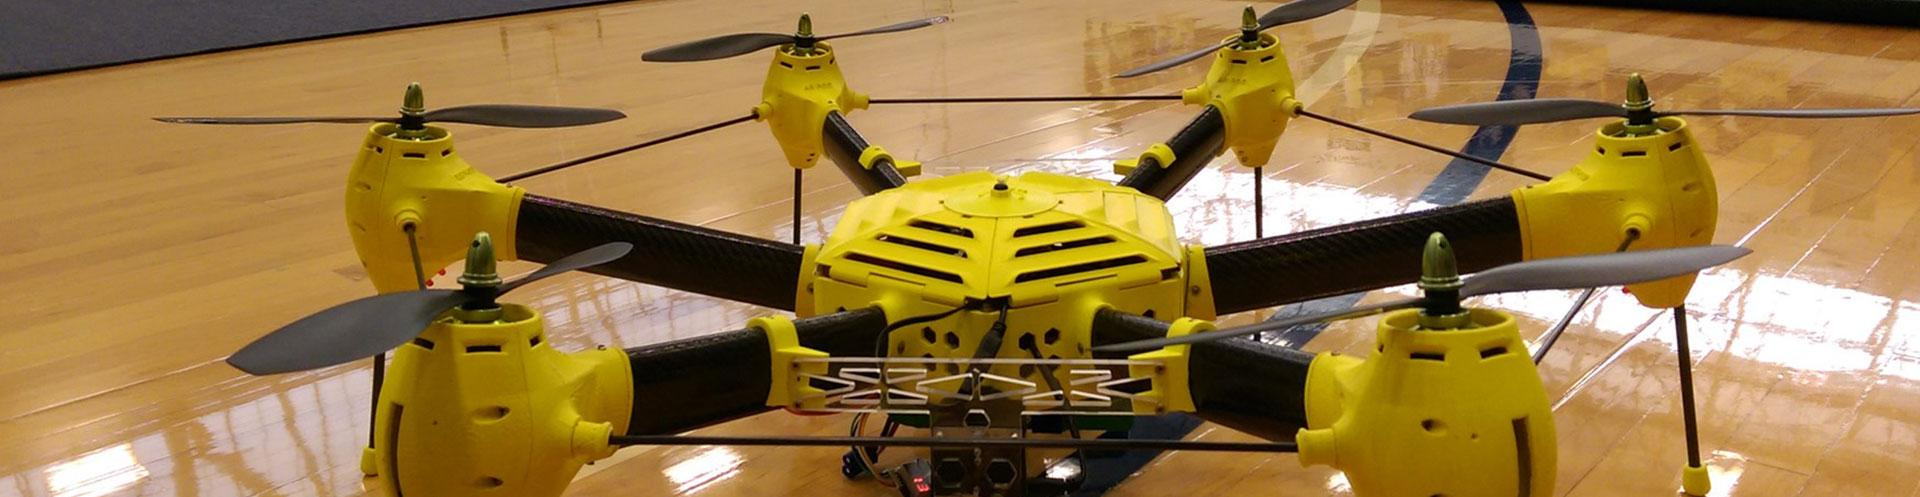 2015 International Aerial Robotics Competition